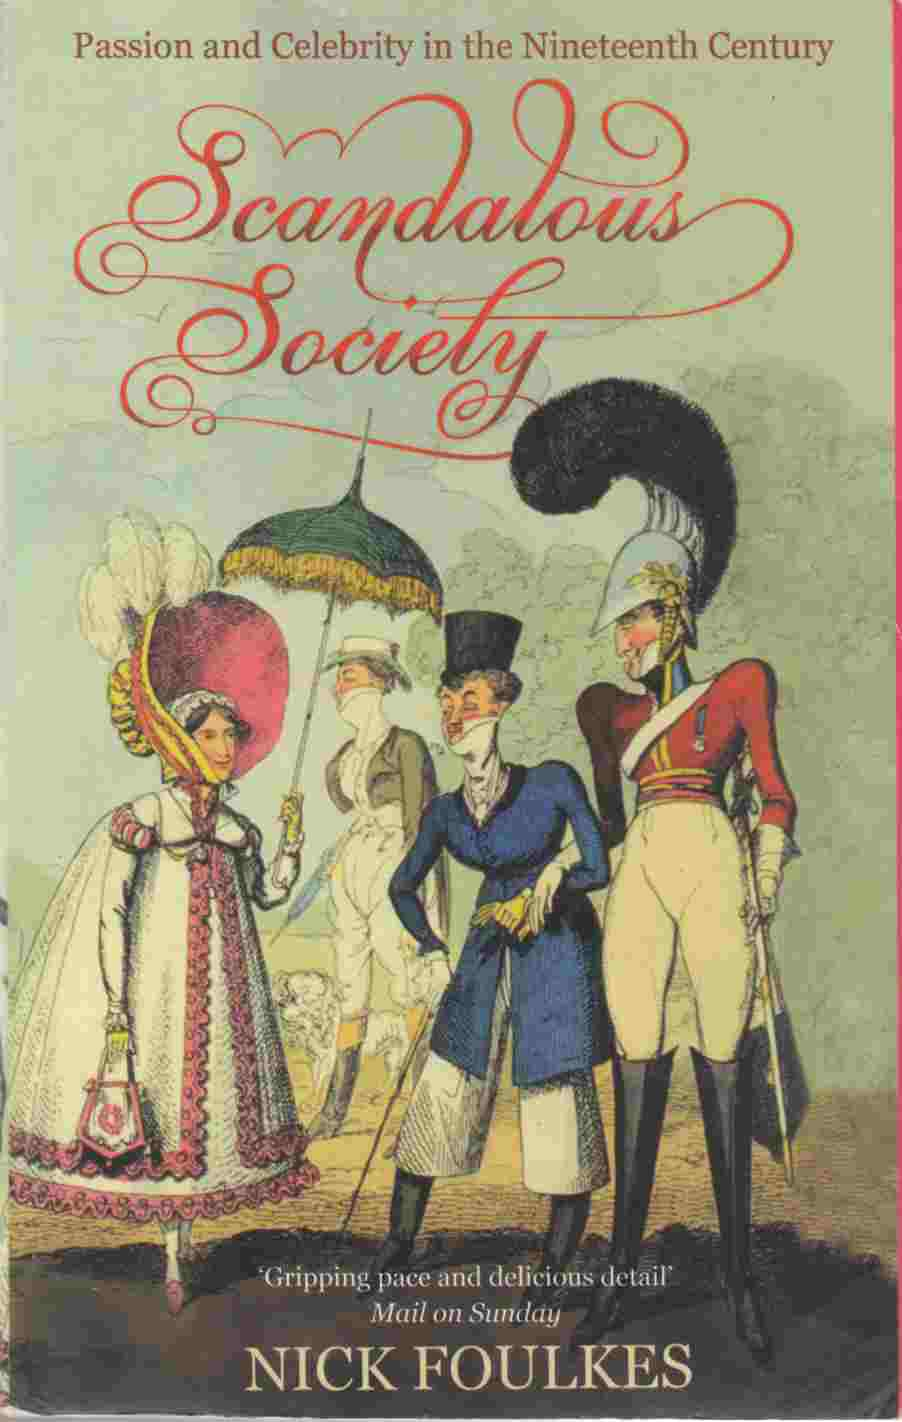 Image for Scandalous Society Passion and Celebrity in the Nineteenth Century